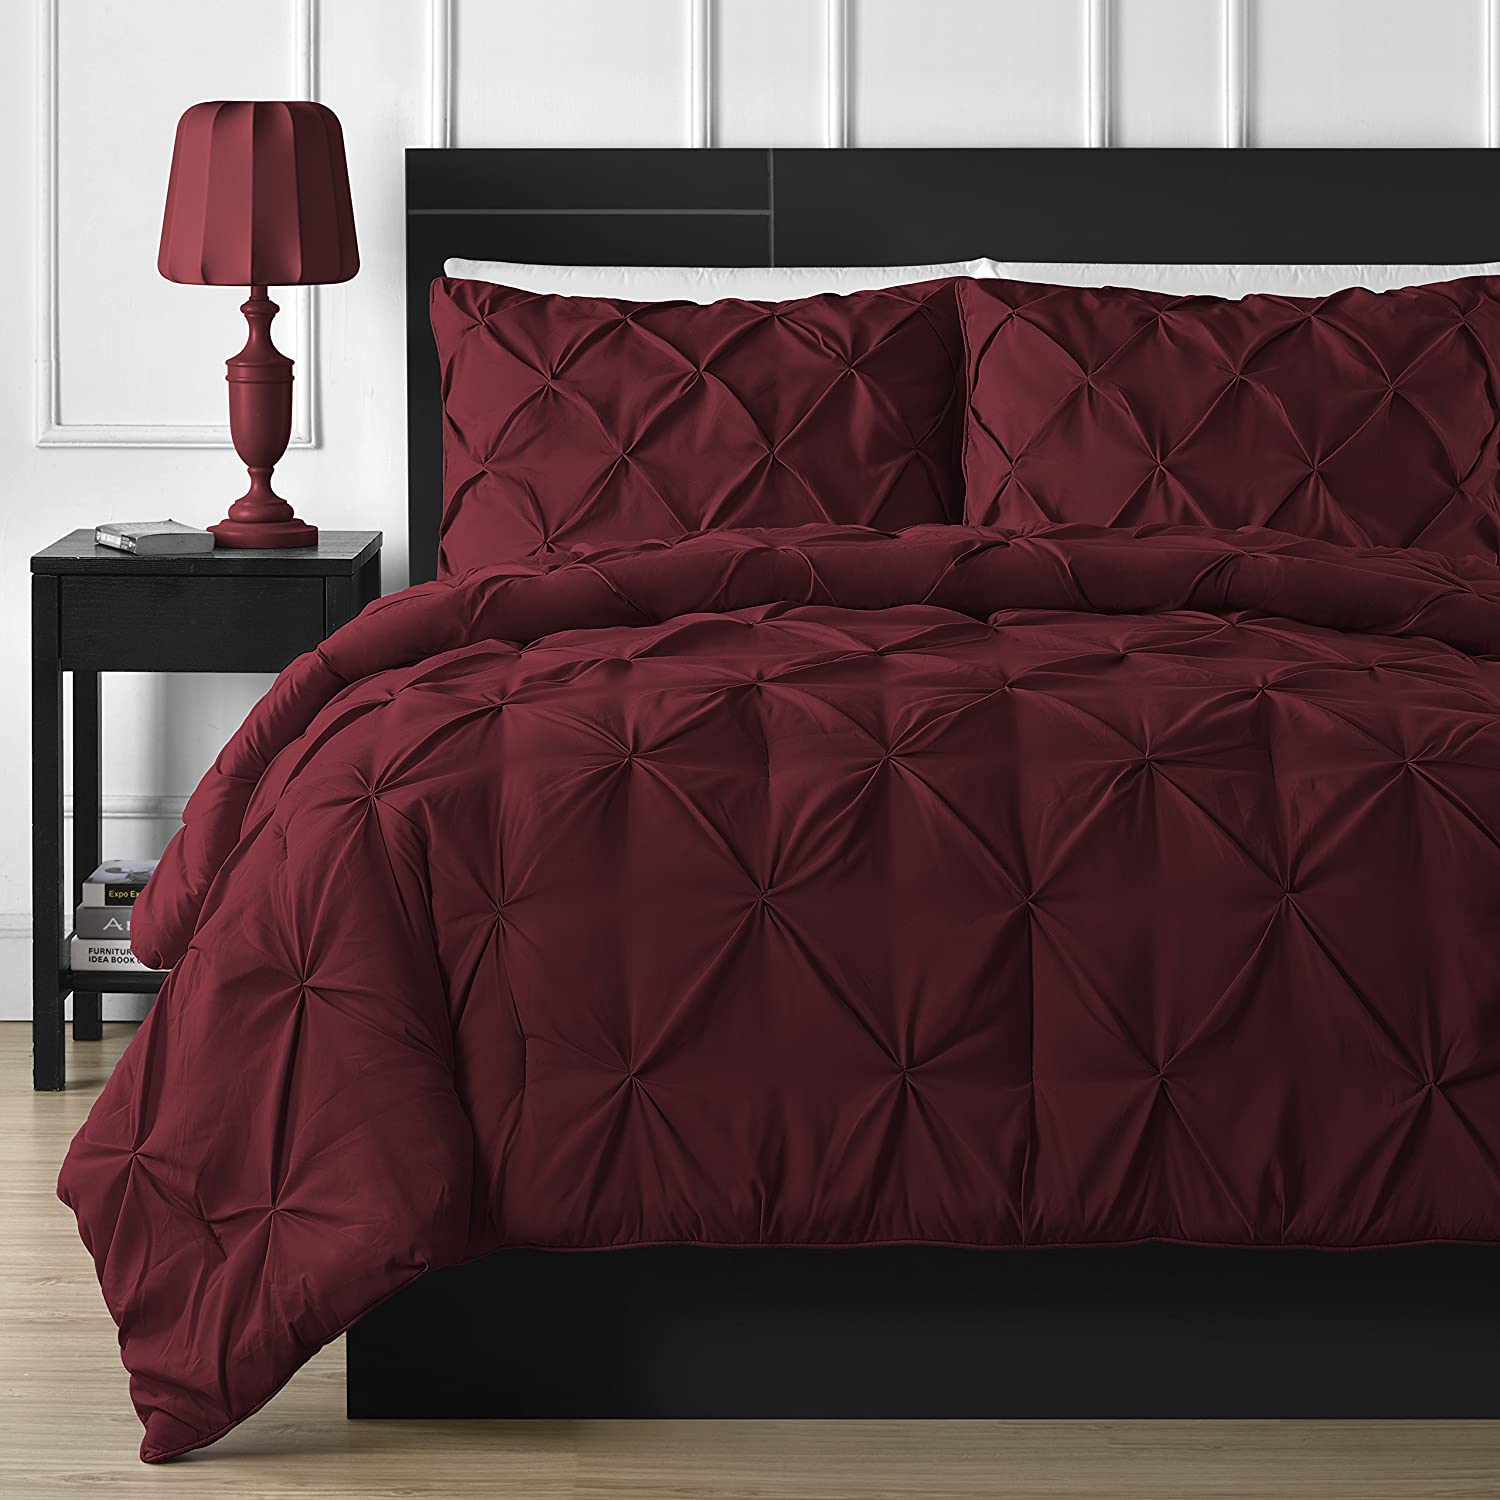 Double-needle Durable Stitching Comfy Bedding 3-piece Pinch Pleat Comforter Set Queen, Burgundy